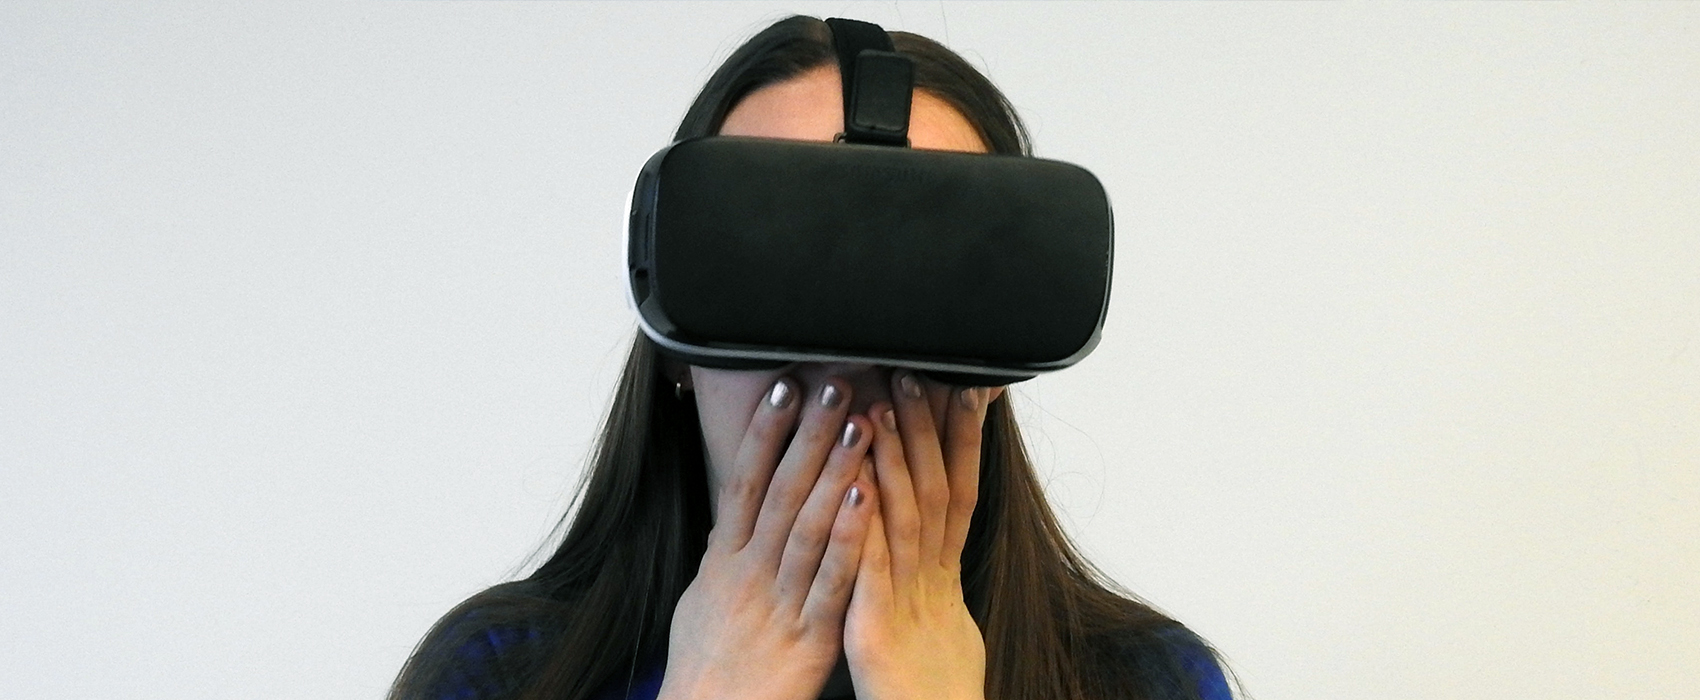 Marketing Trends - VR and AR